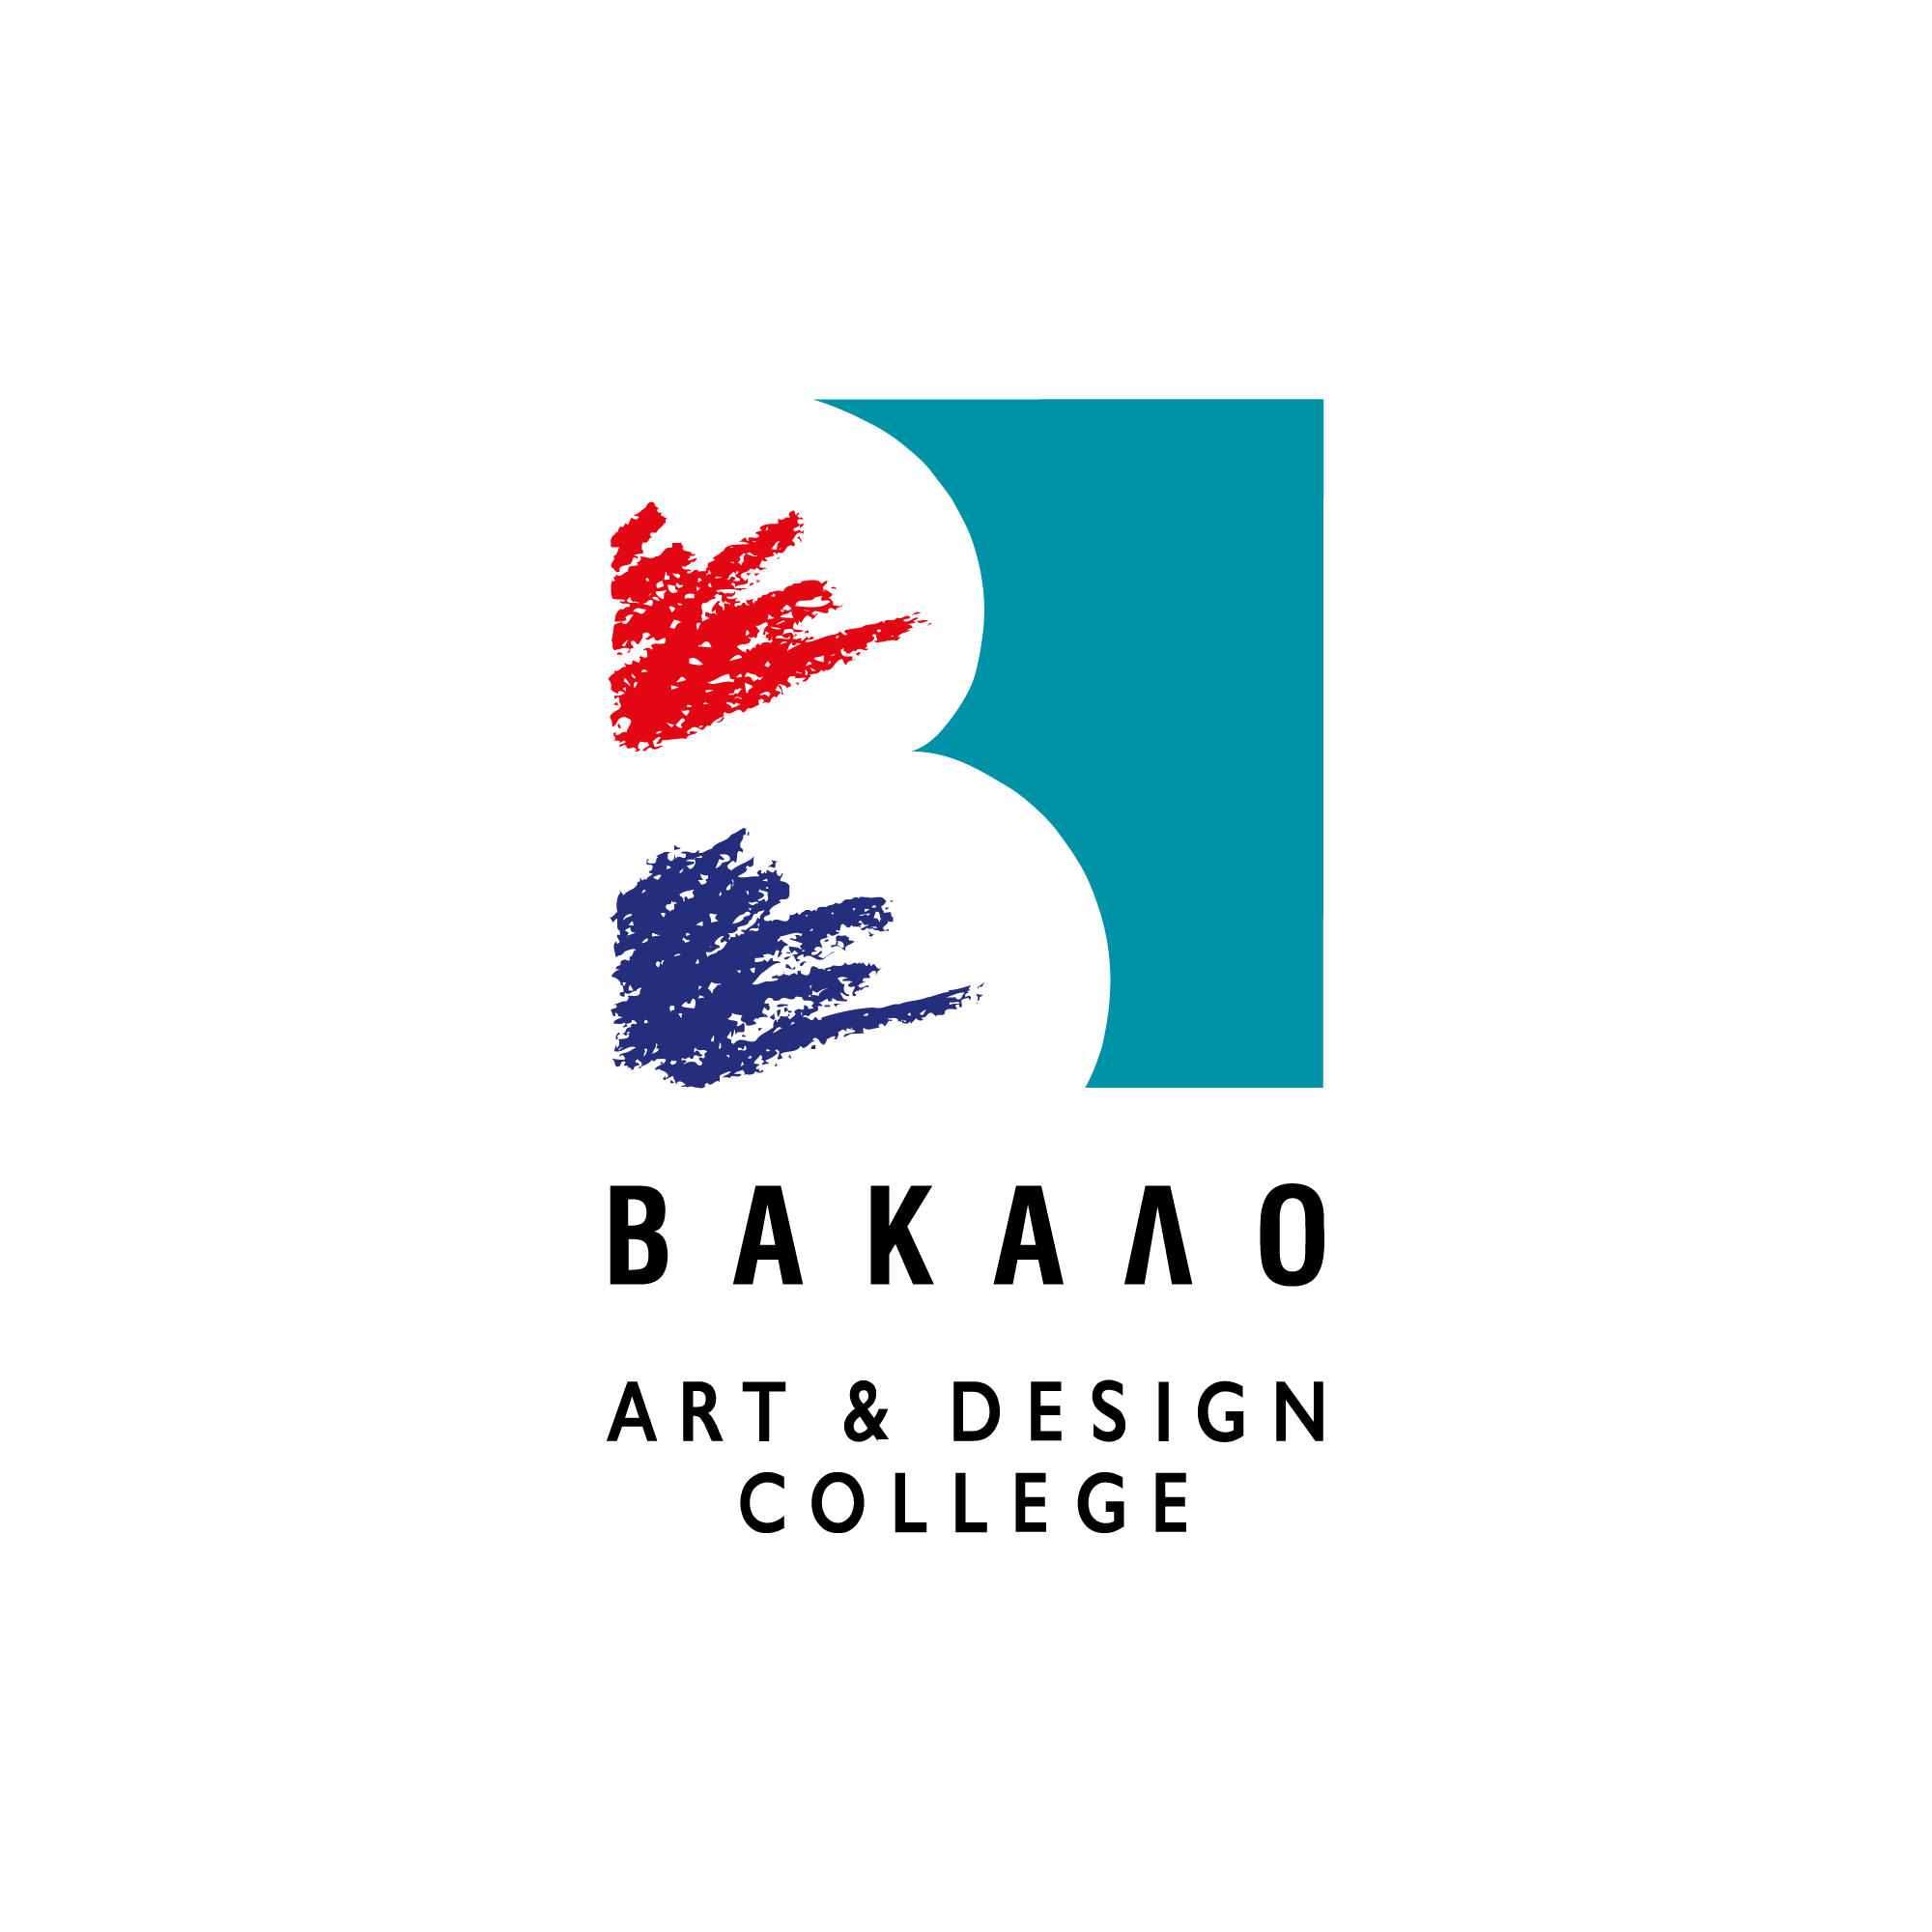 Vakalo Art and Design College logo